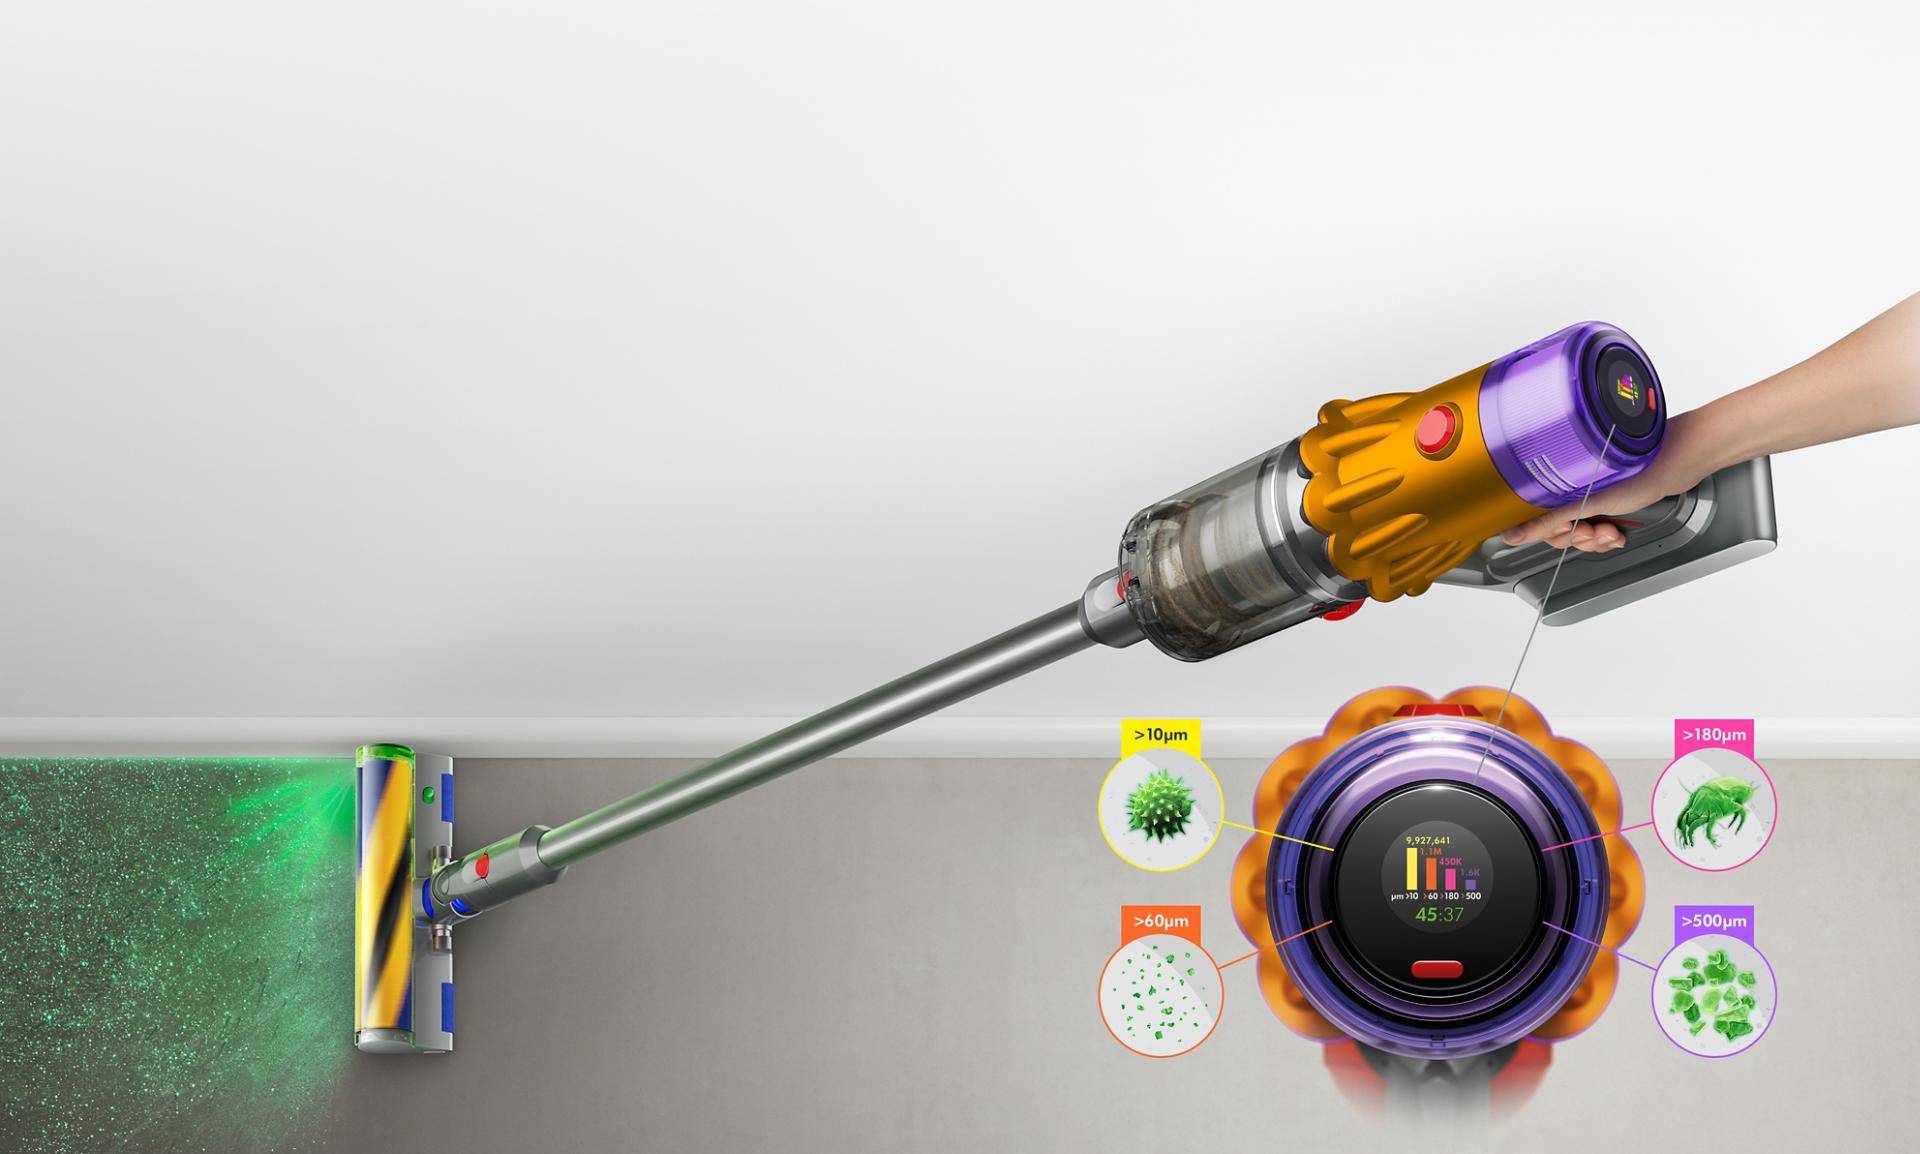 Dyson V12 Detect Slim vacuum with Slim Fluffy Laser cleaner head, showing sizes of dust detected